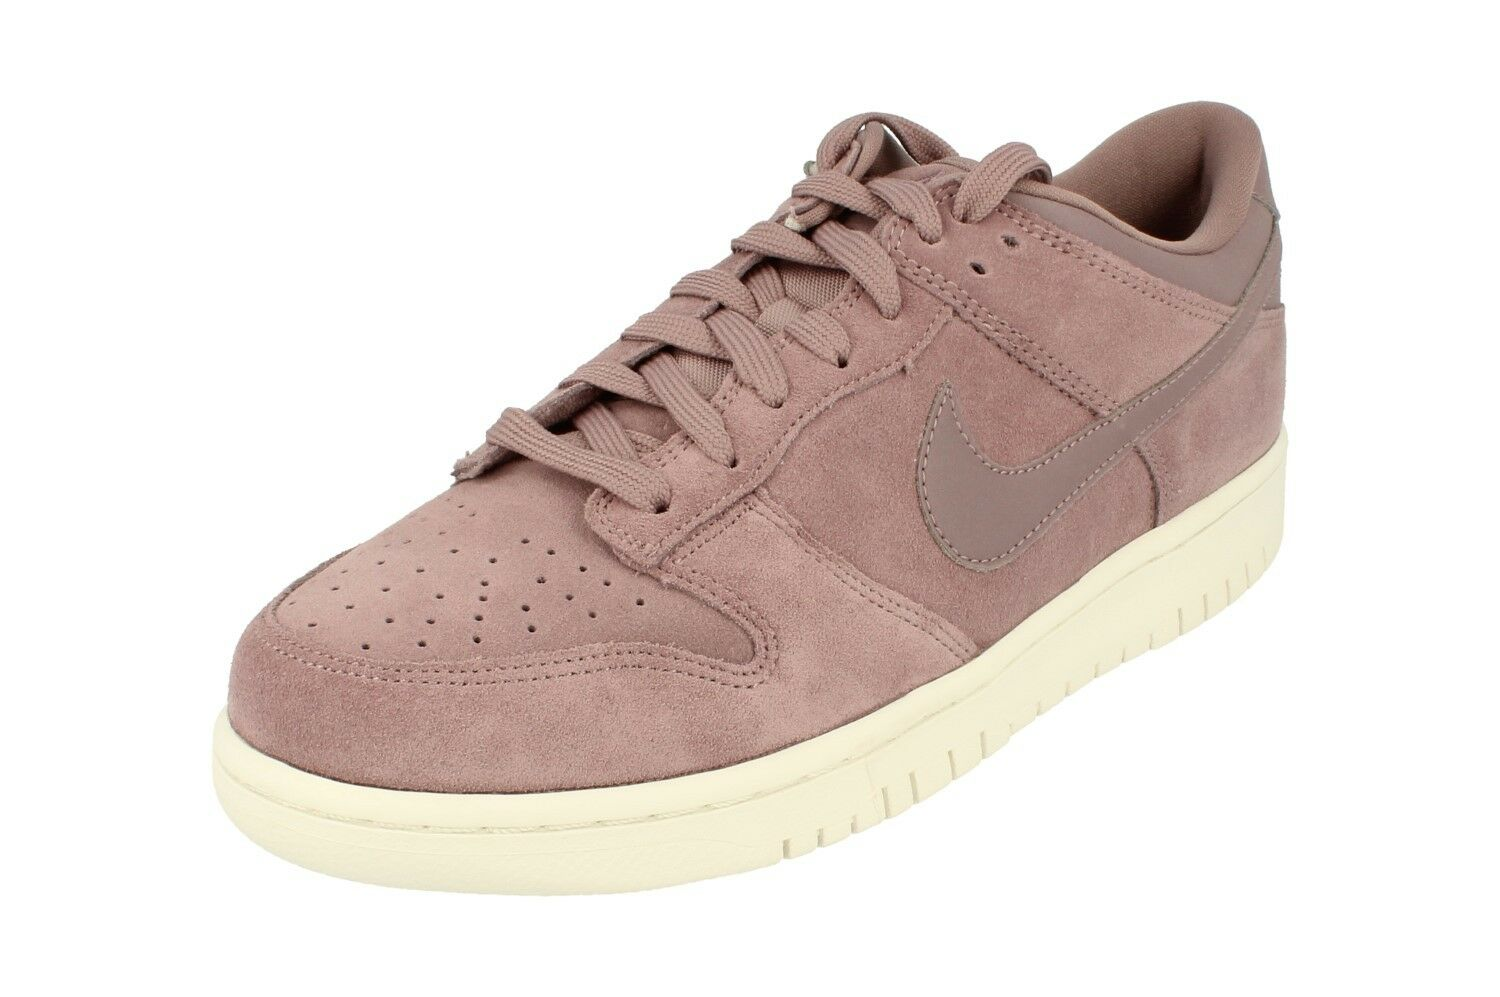 Nike 921307 Dunk Bas Prm Baskets Hommes 921307 Nike Baskets 200 f42f2e